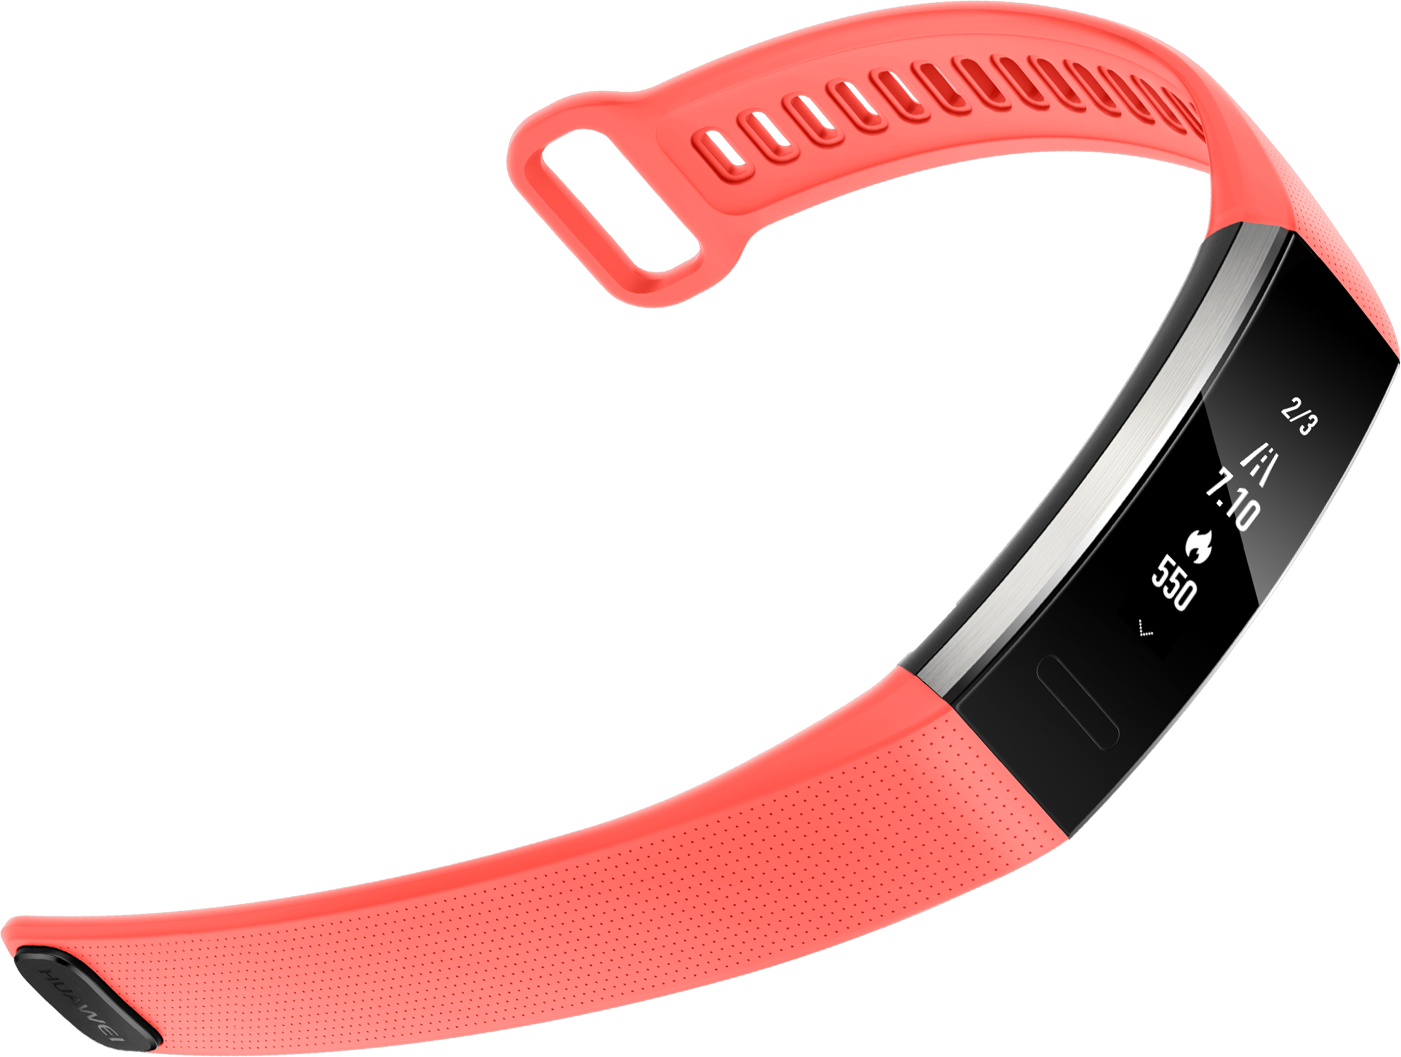 Huawei Band 2 Pro Smartband Review Reviews Xiaomi 042ampquot Screen Mi Smart Wristband Replace Black In The Test Unit Provided By Germany